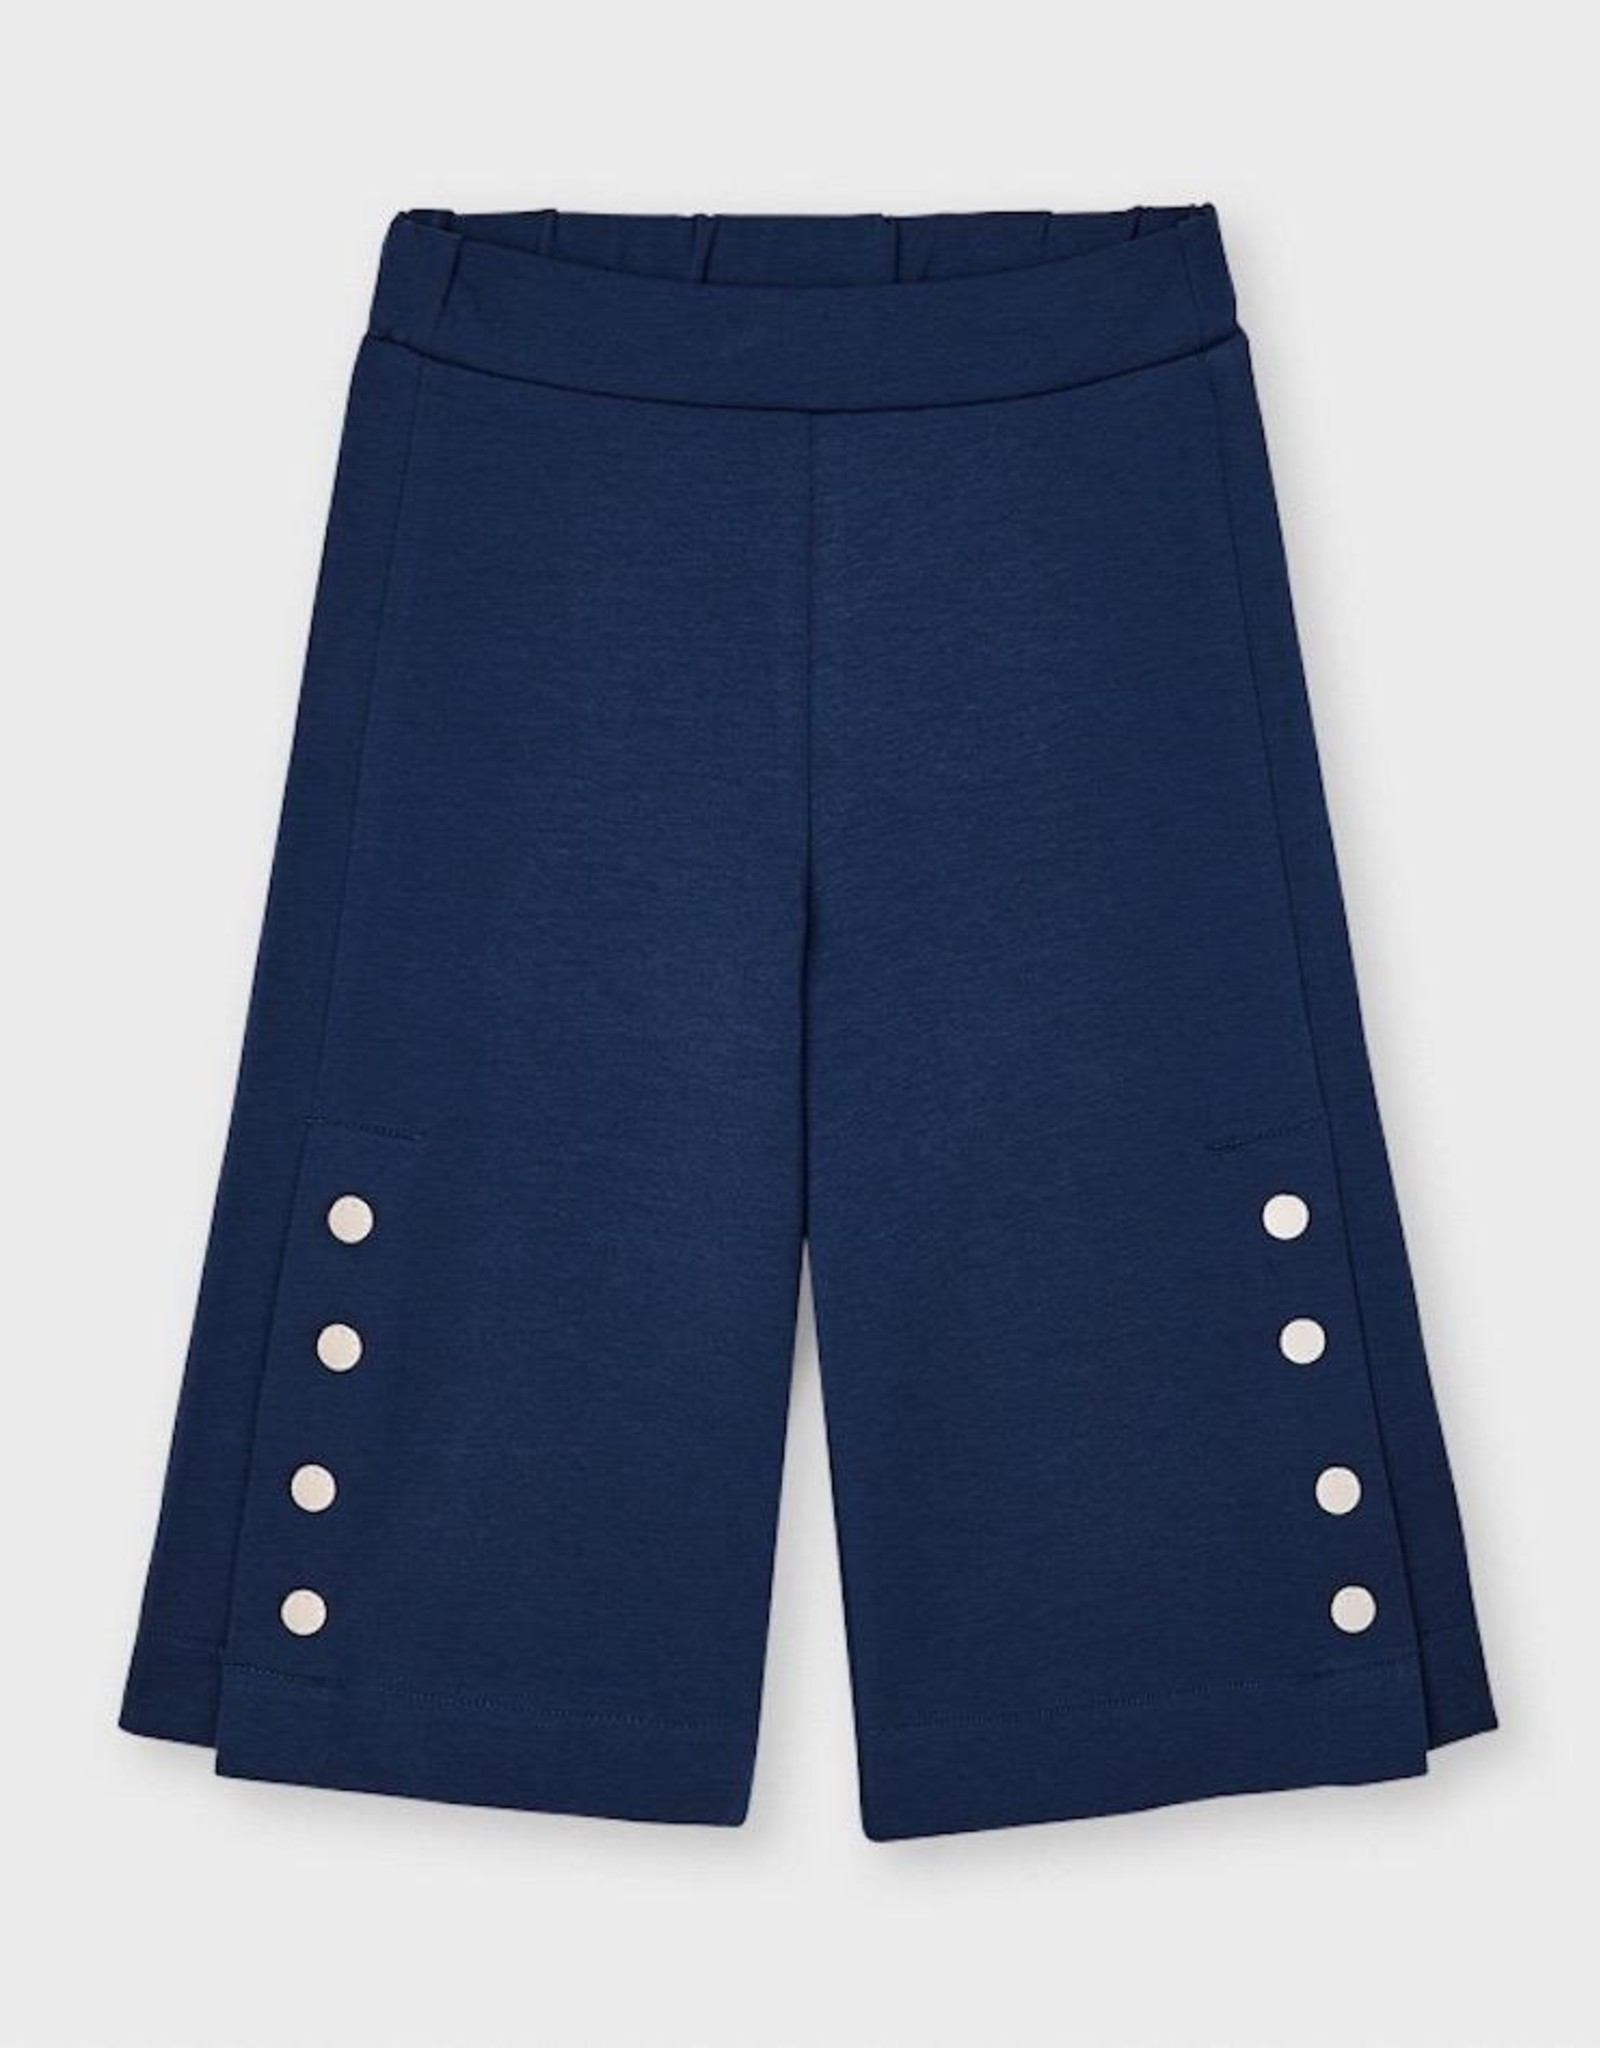 Mayoral Ink Culotte Pants with Side Buttons